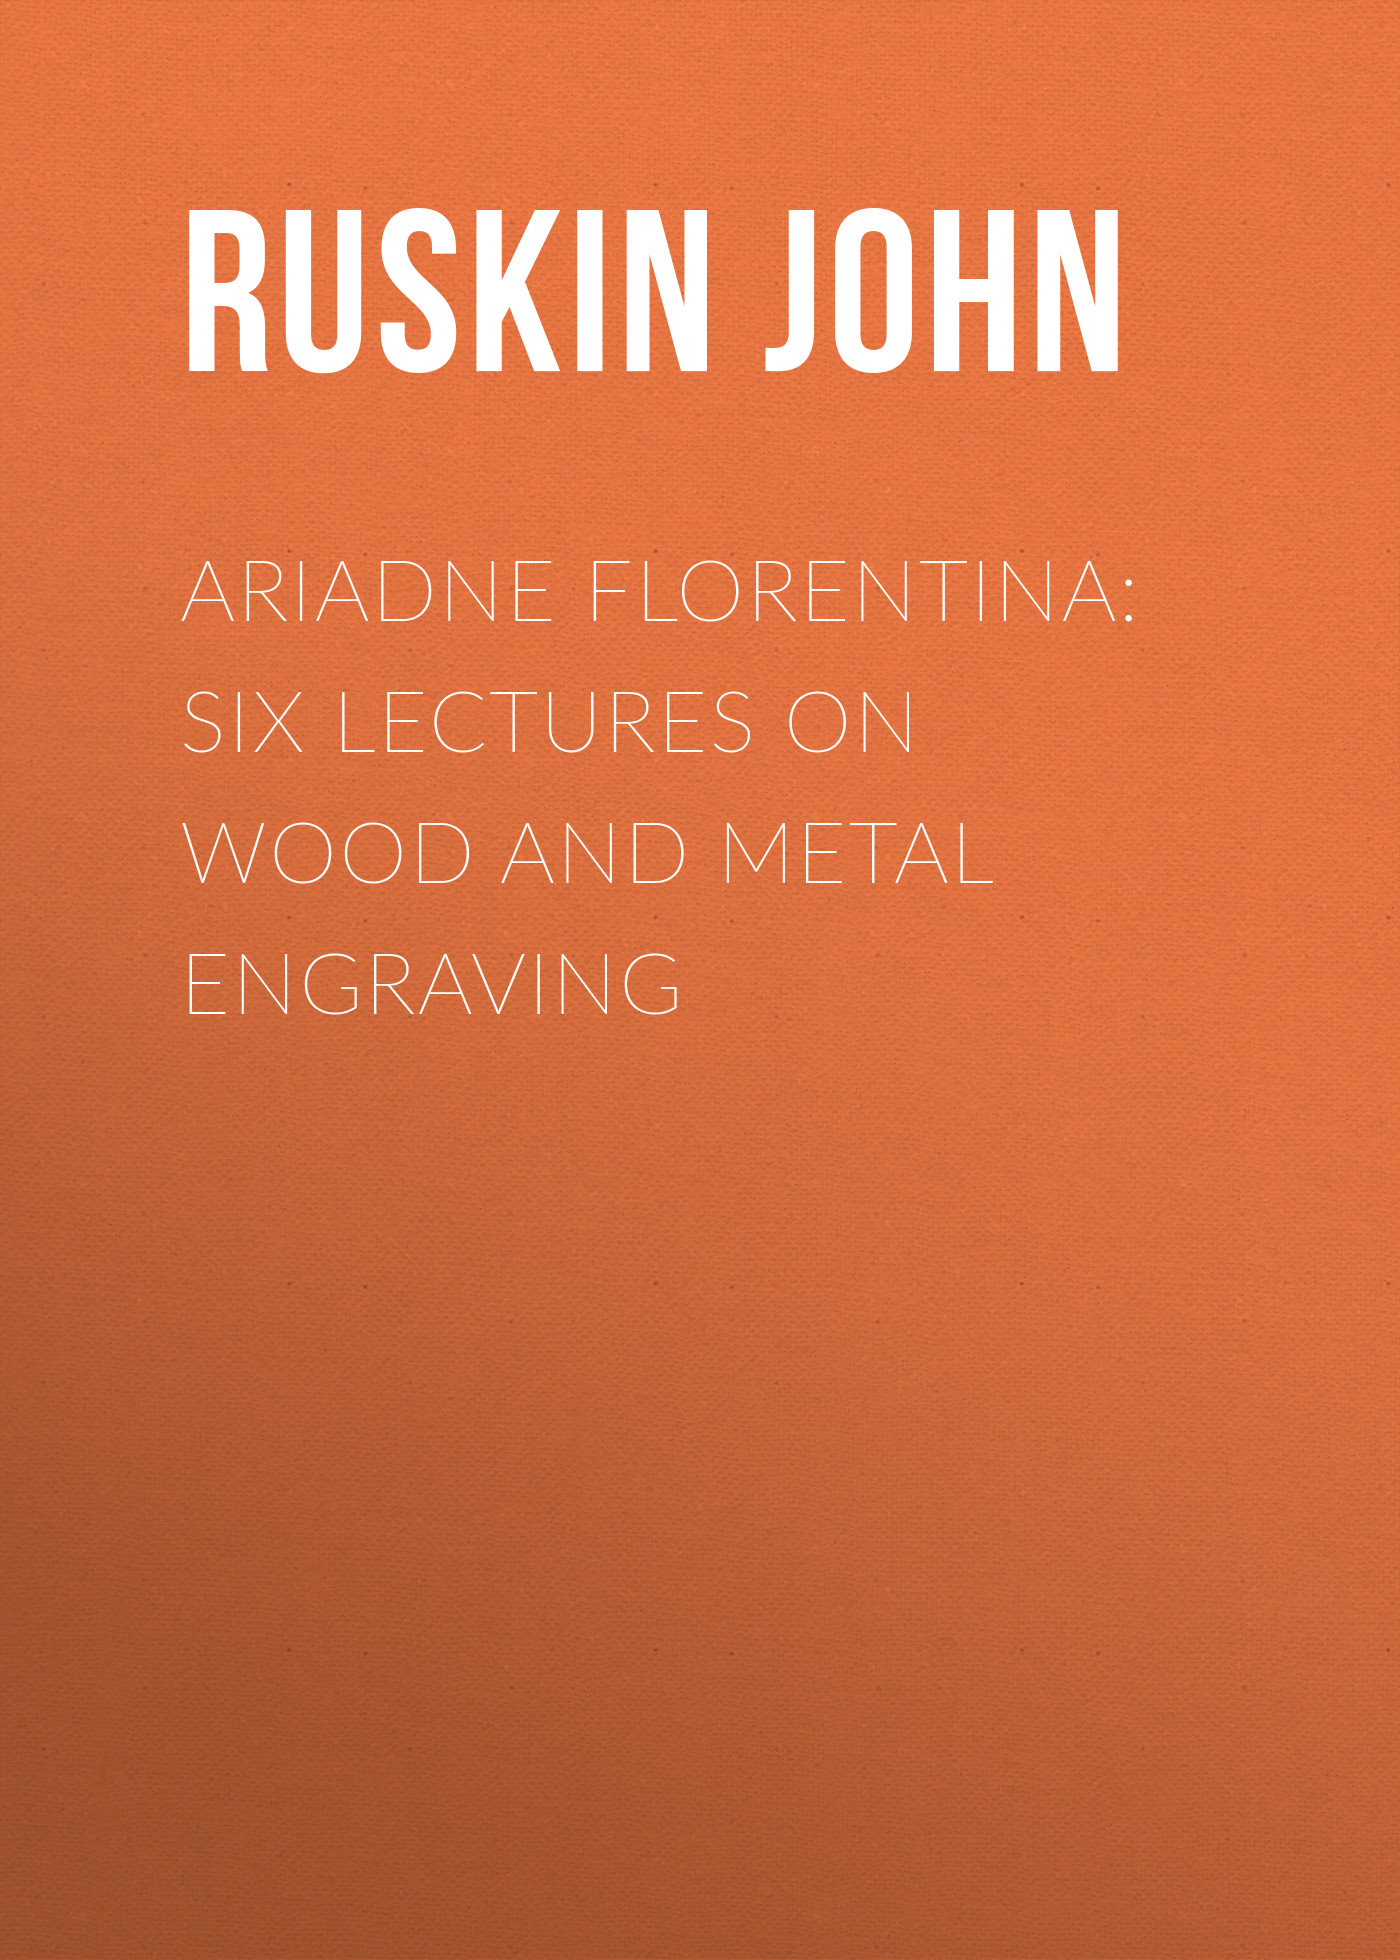 Ruskin John Ariadne Florentina: Six Lectures on Wood and Metal Engraving cnc 3018 grbl control diy cnc engraving machine 3 axis pcb milling machine wood router laser engraving best advanced toys